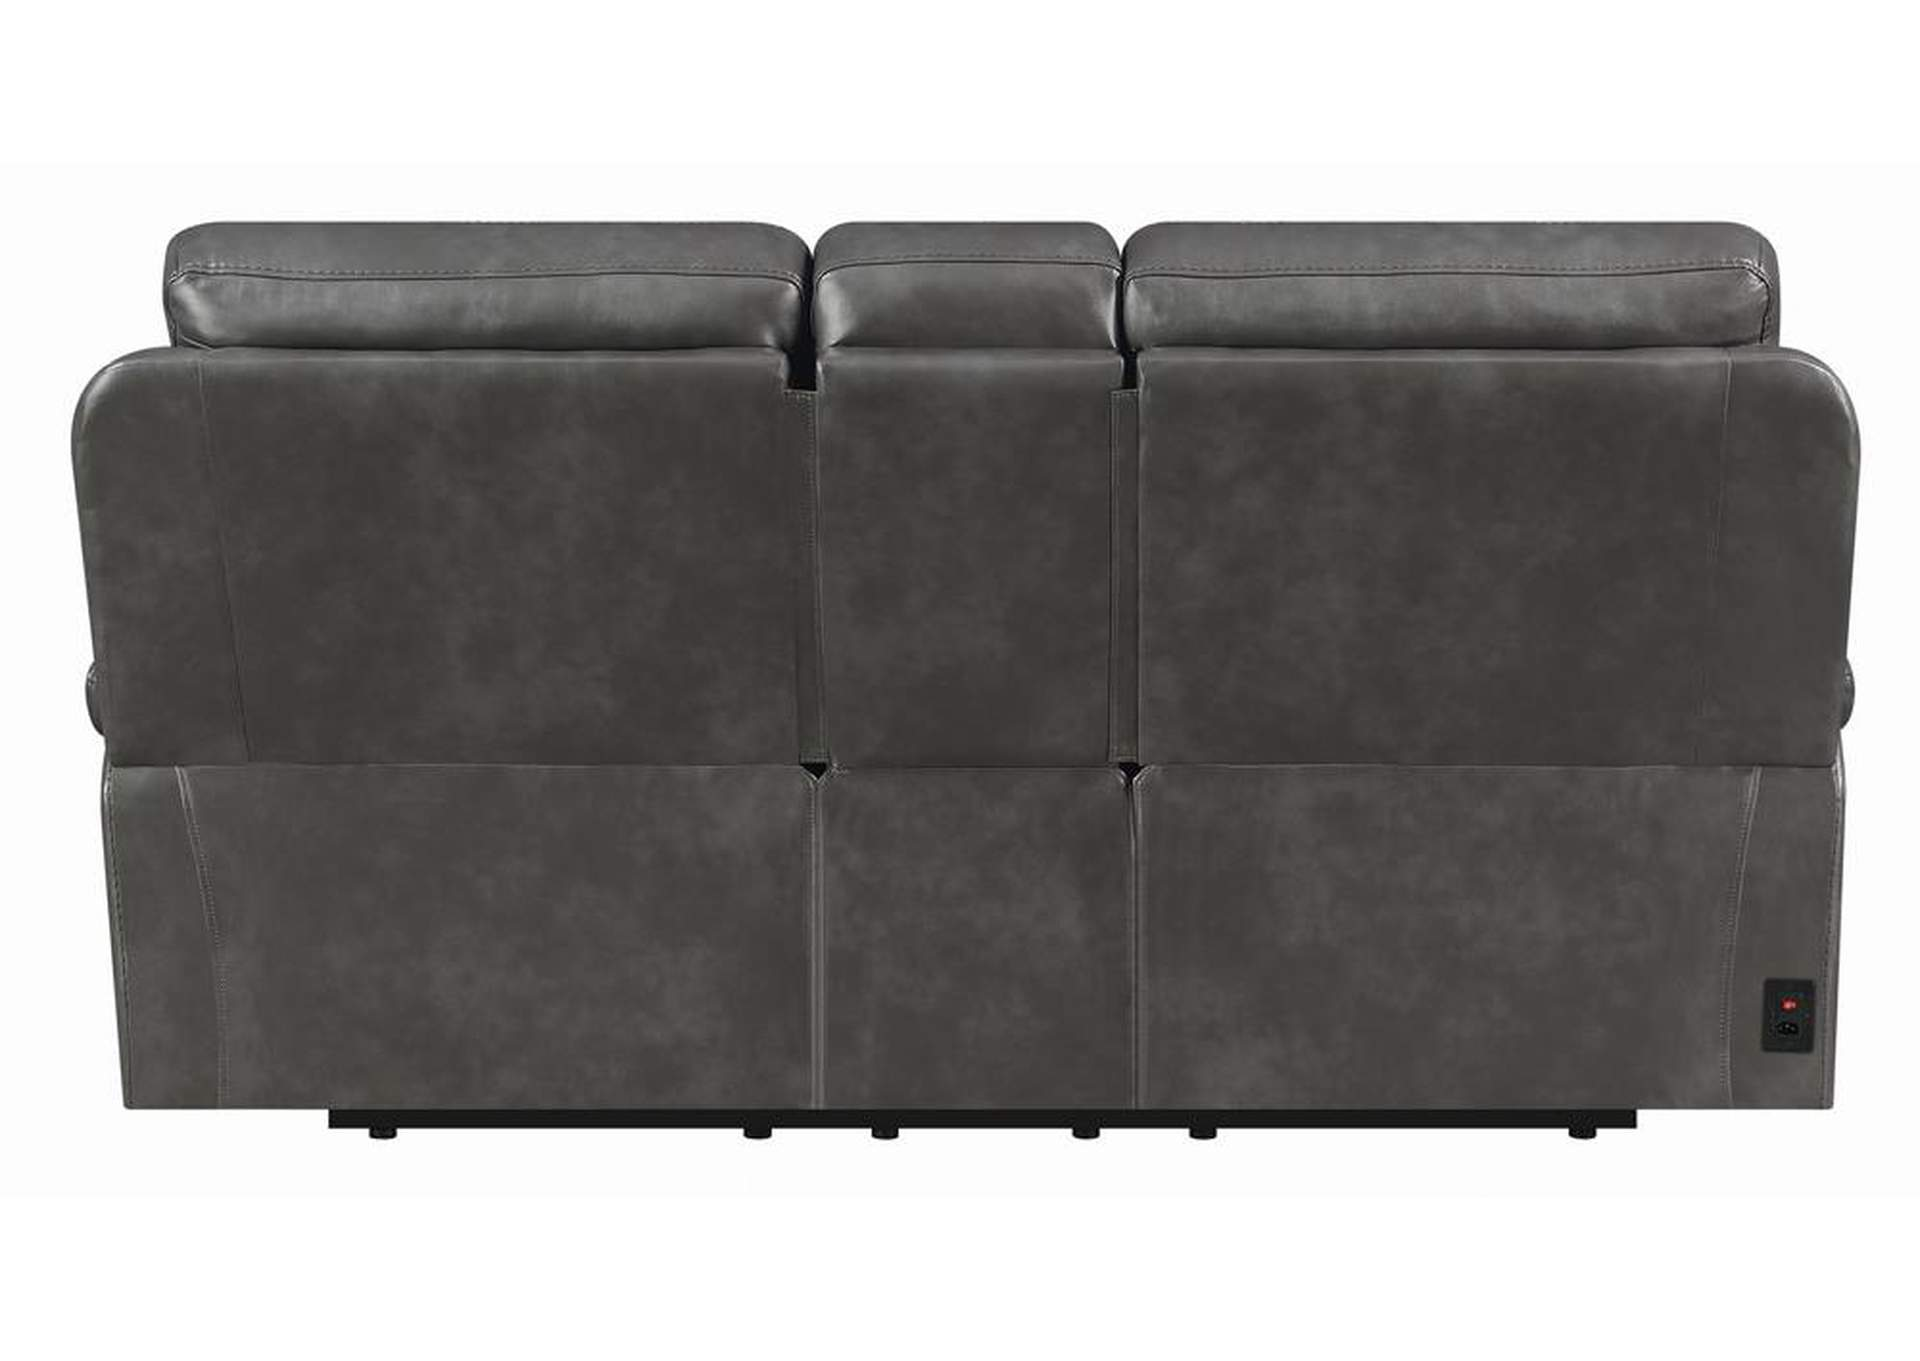 Ravenna Charcoal Power Reclining Loveseat,Coaster Furniture